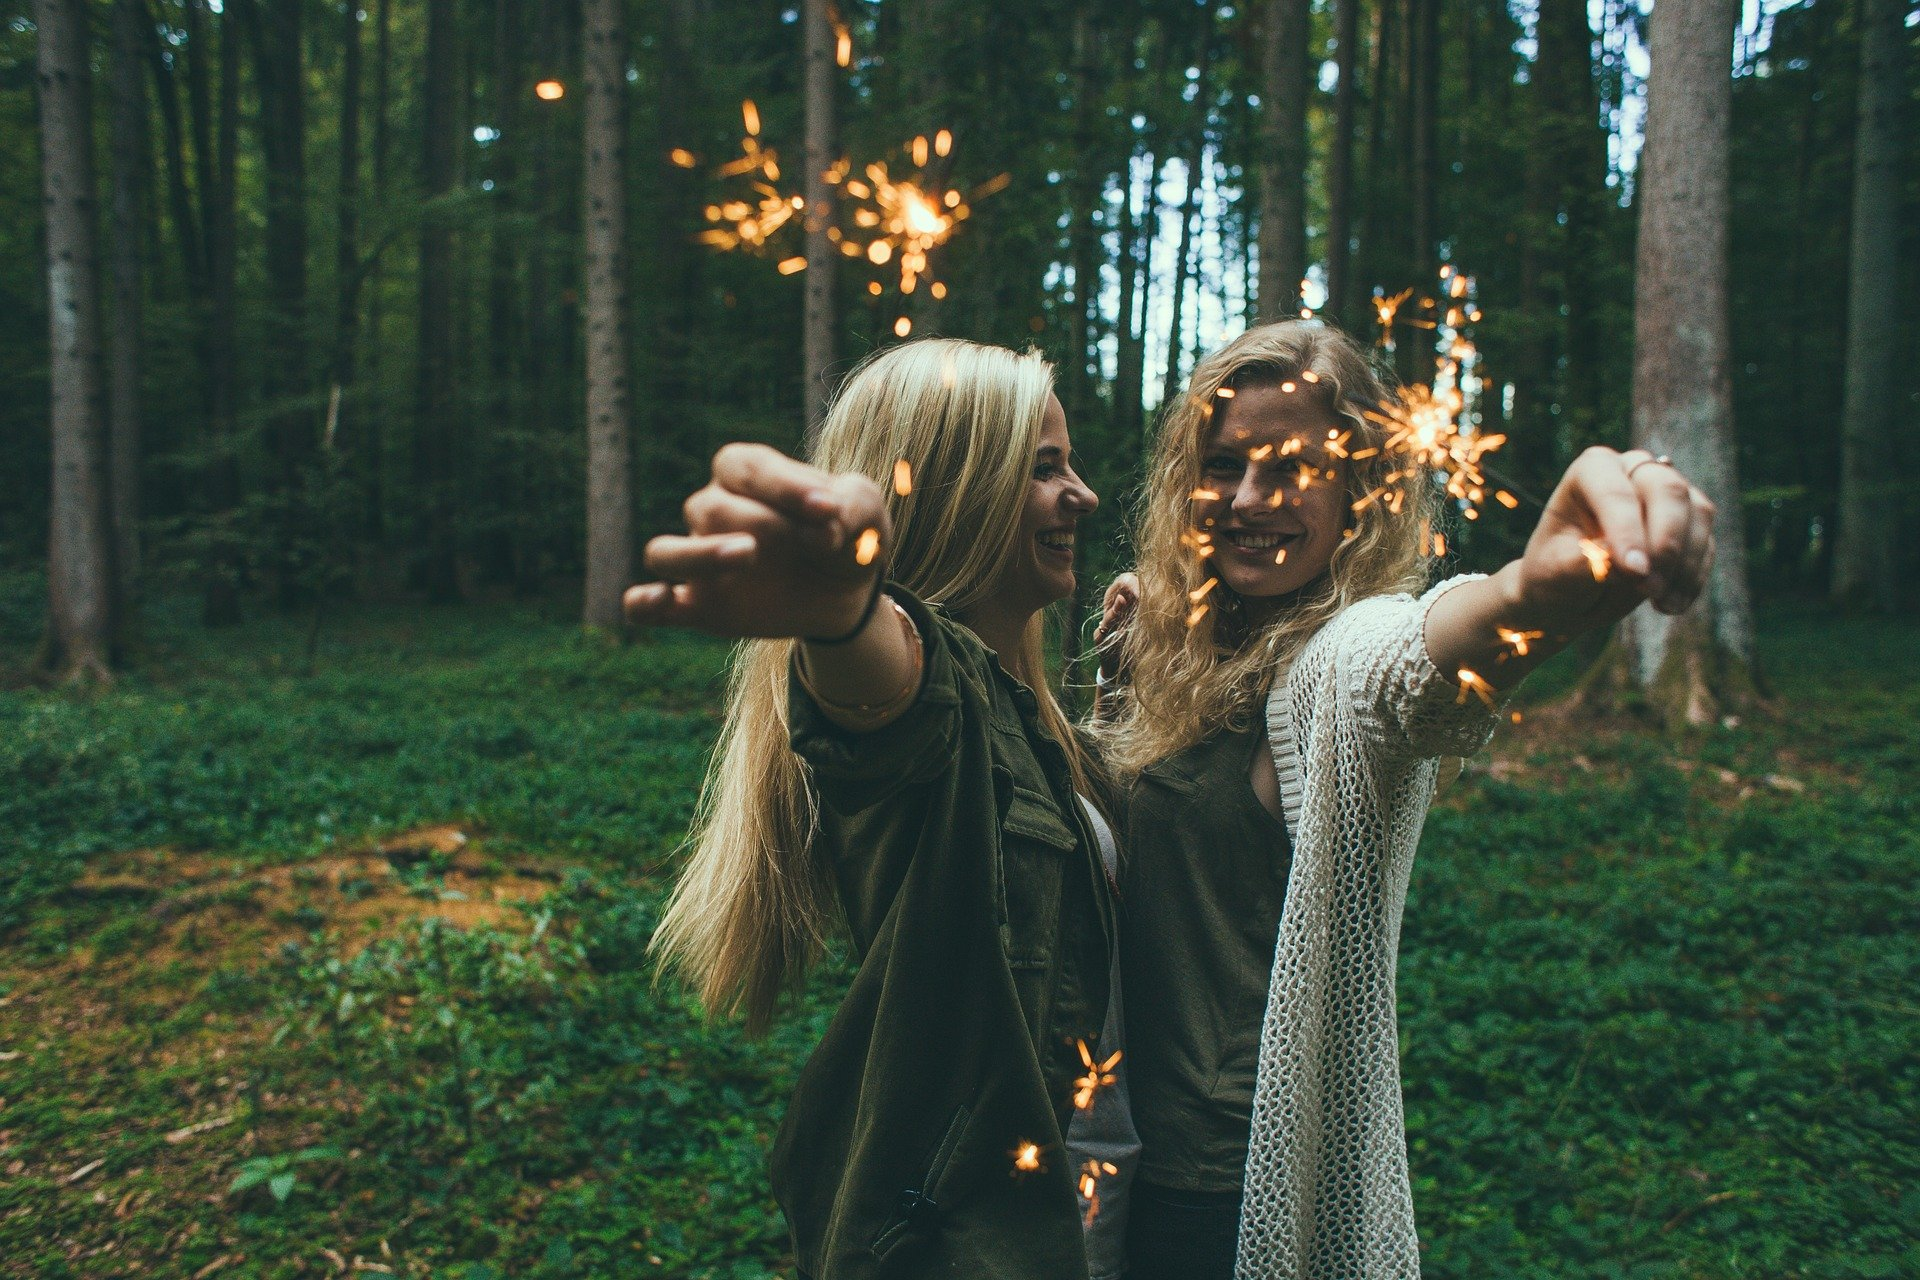 Two women in the forest, holding sparklers in their hands.